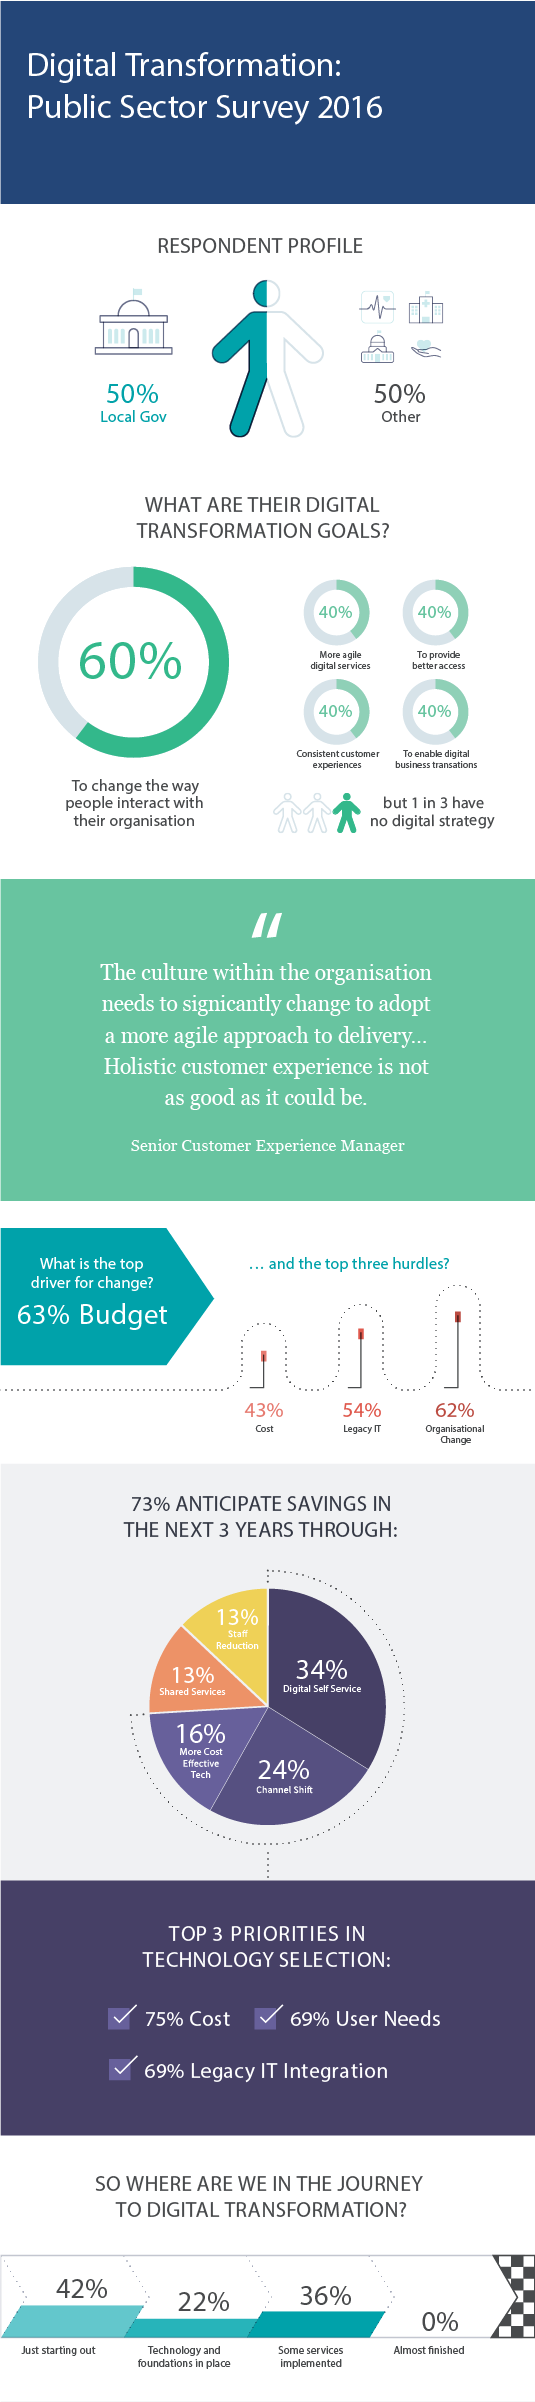 Digital transformation survey infographic 2016